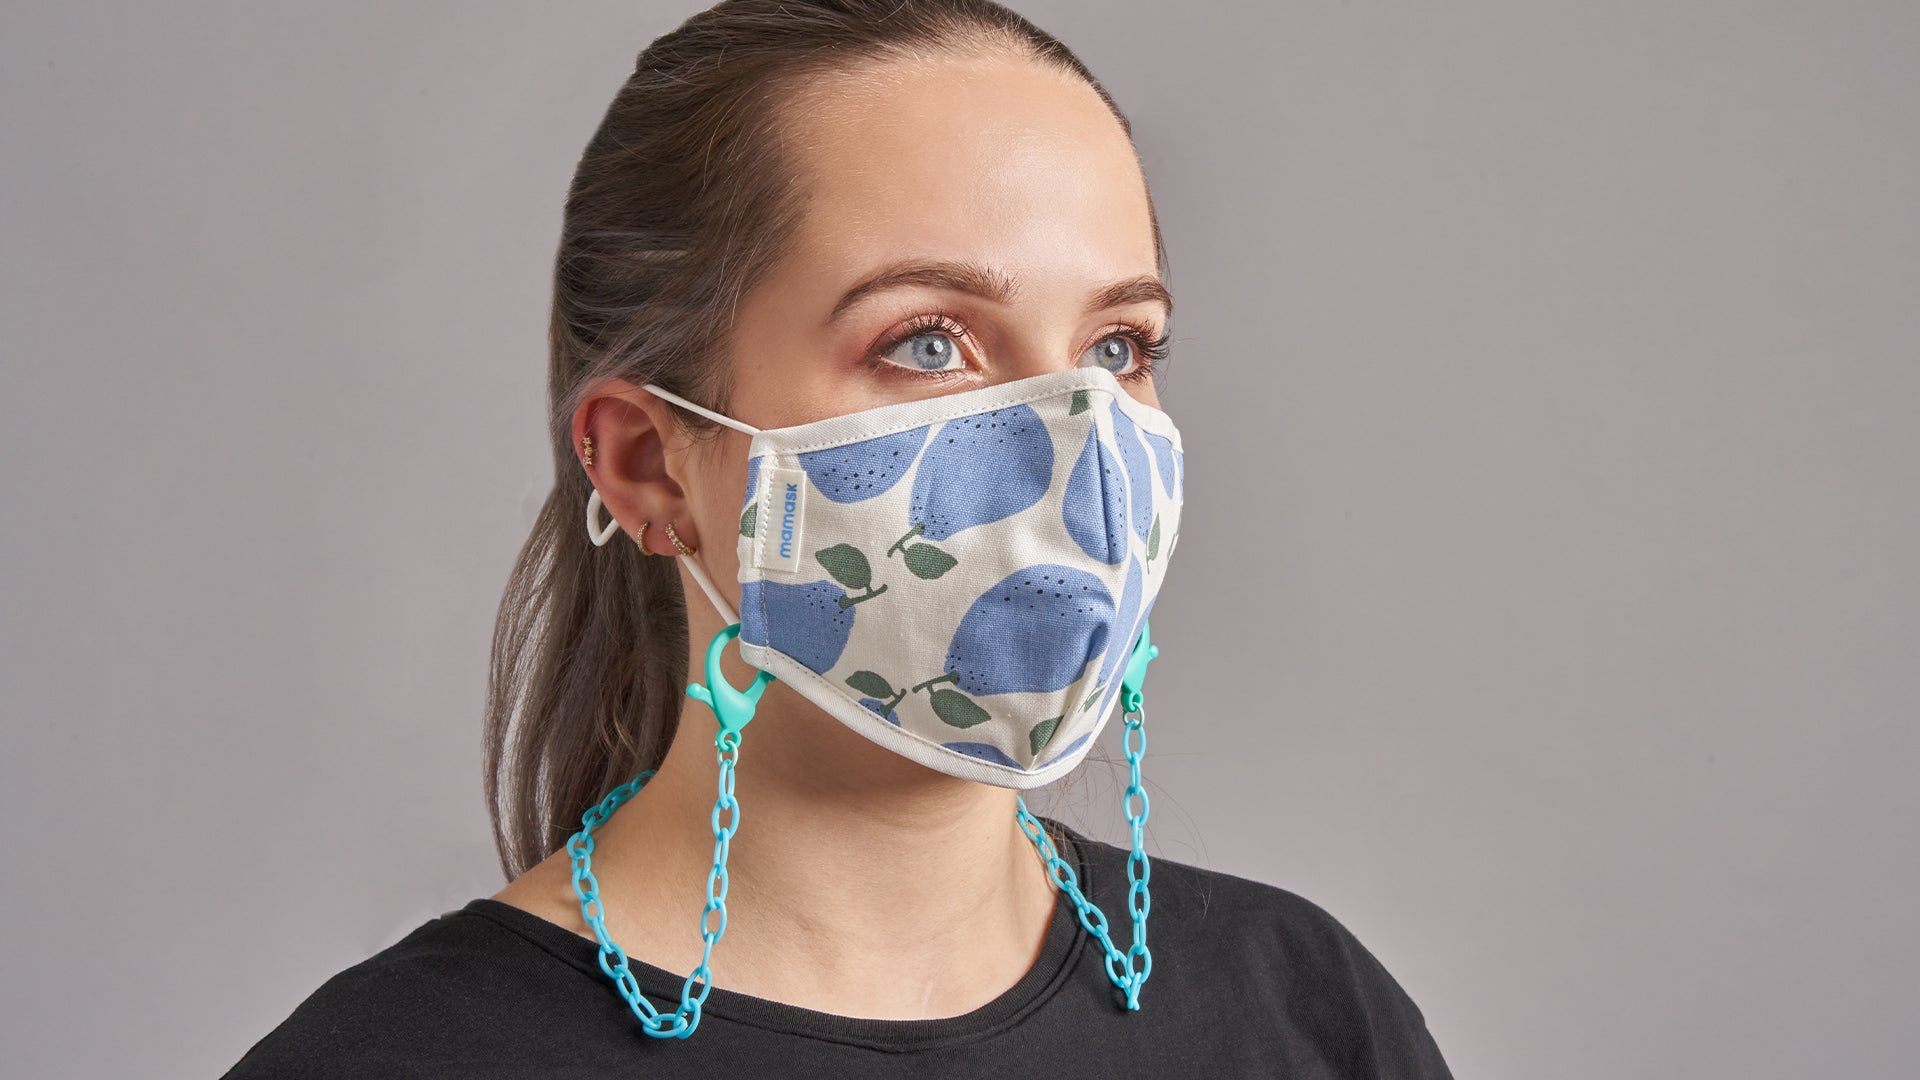 Rainbow & Turquoise Chain Mask Necklace - Mamask